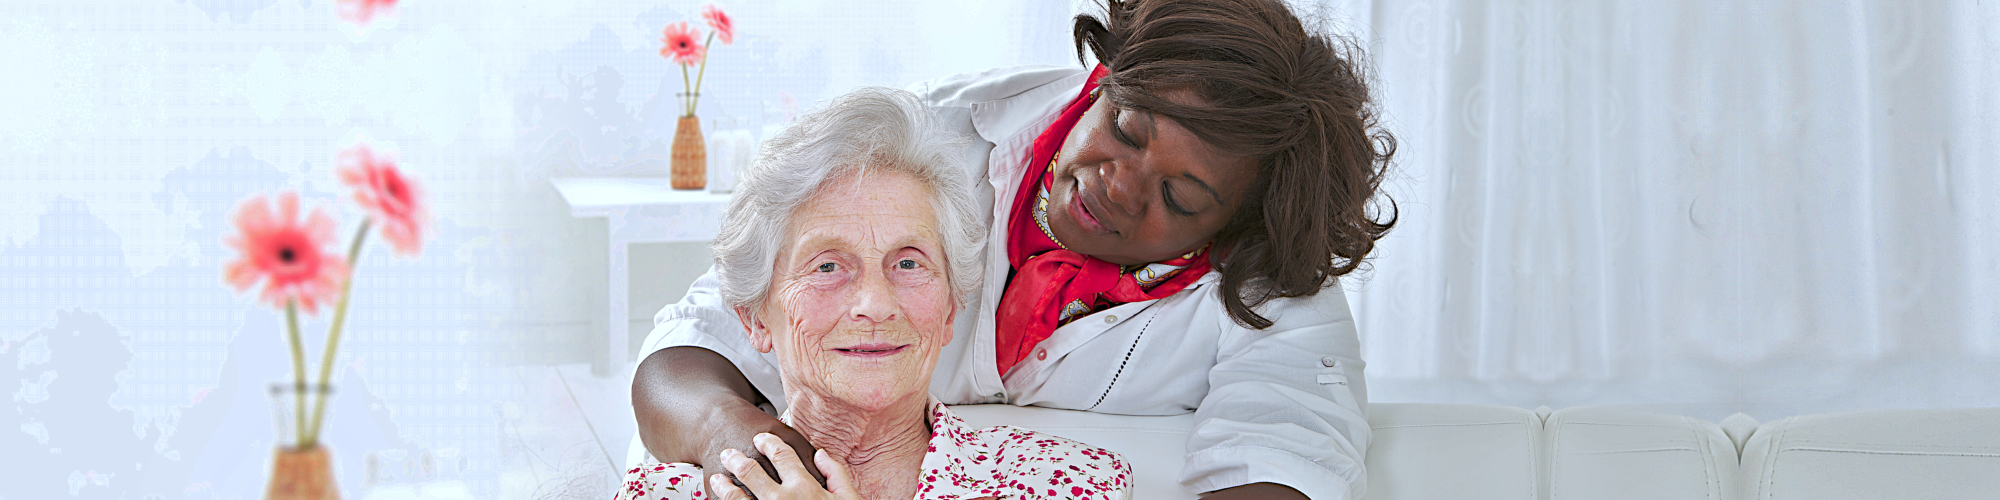 african caregiver and her old woman patient